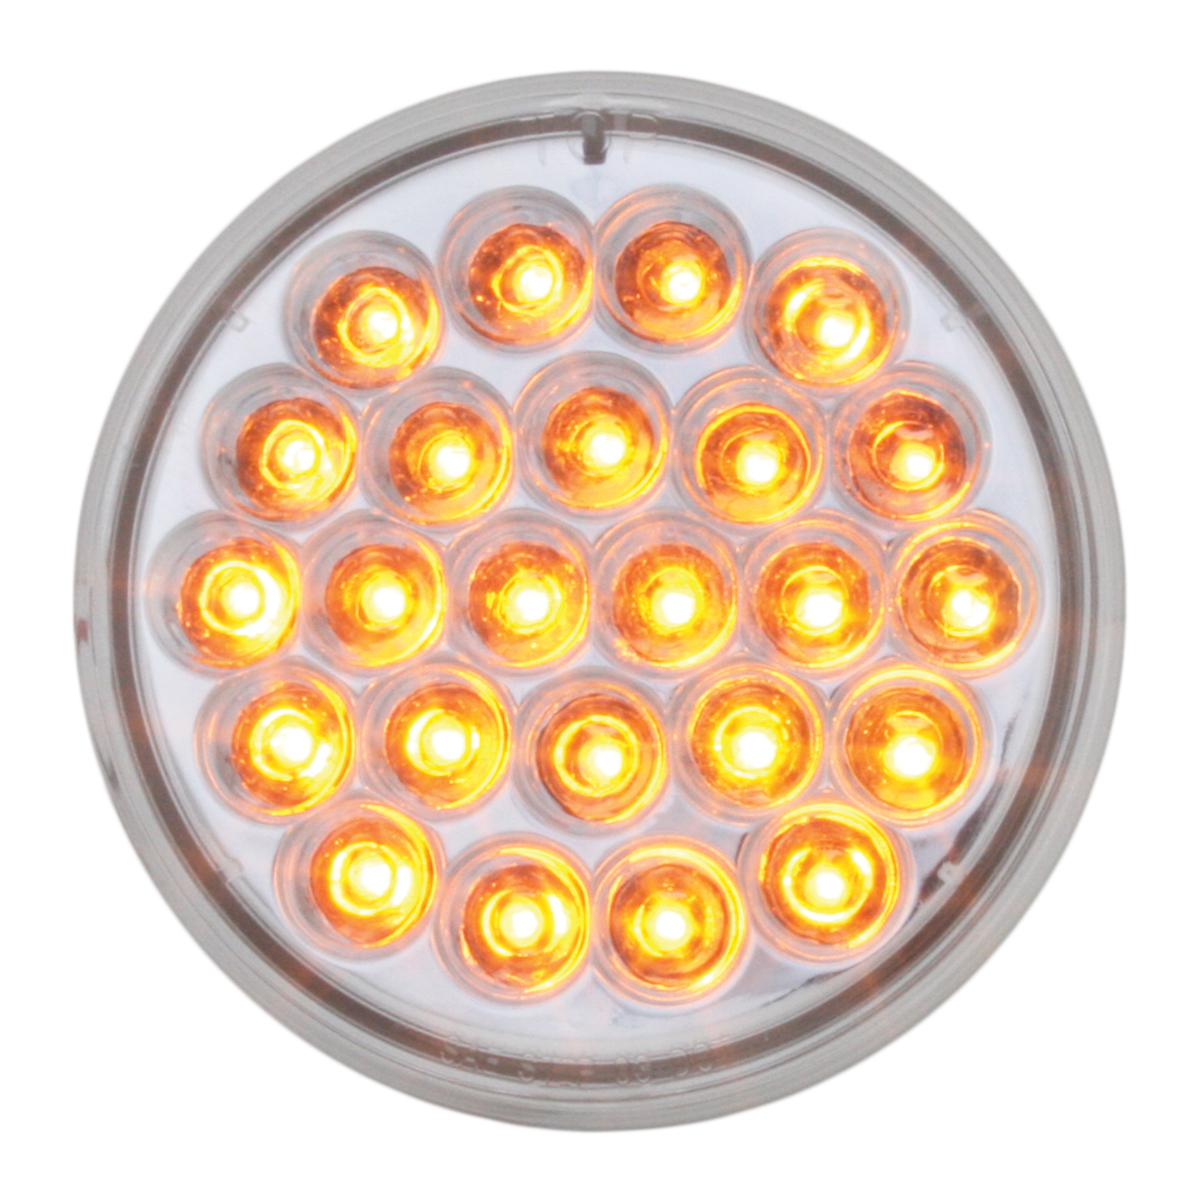 """4"""" Round Synchronous/Alternating Pearl LED Strobe Light in Amber/Clear"""